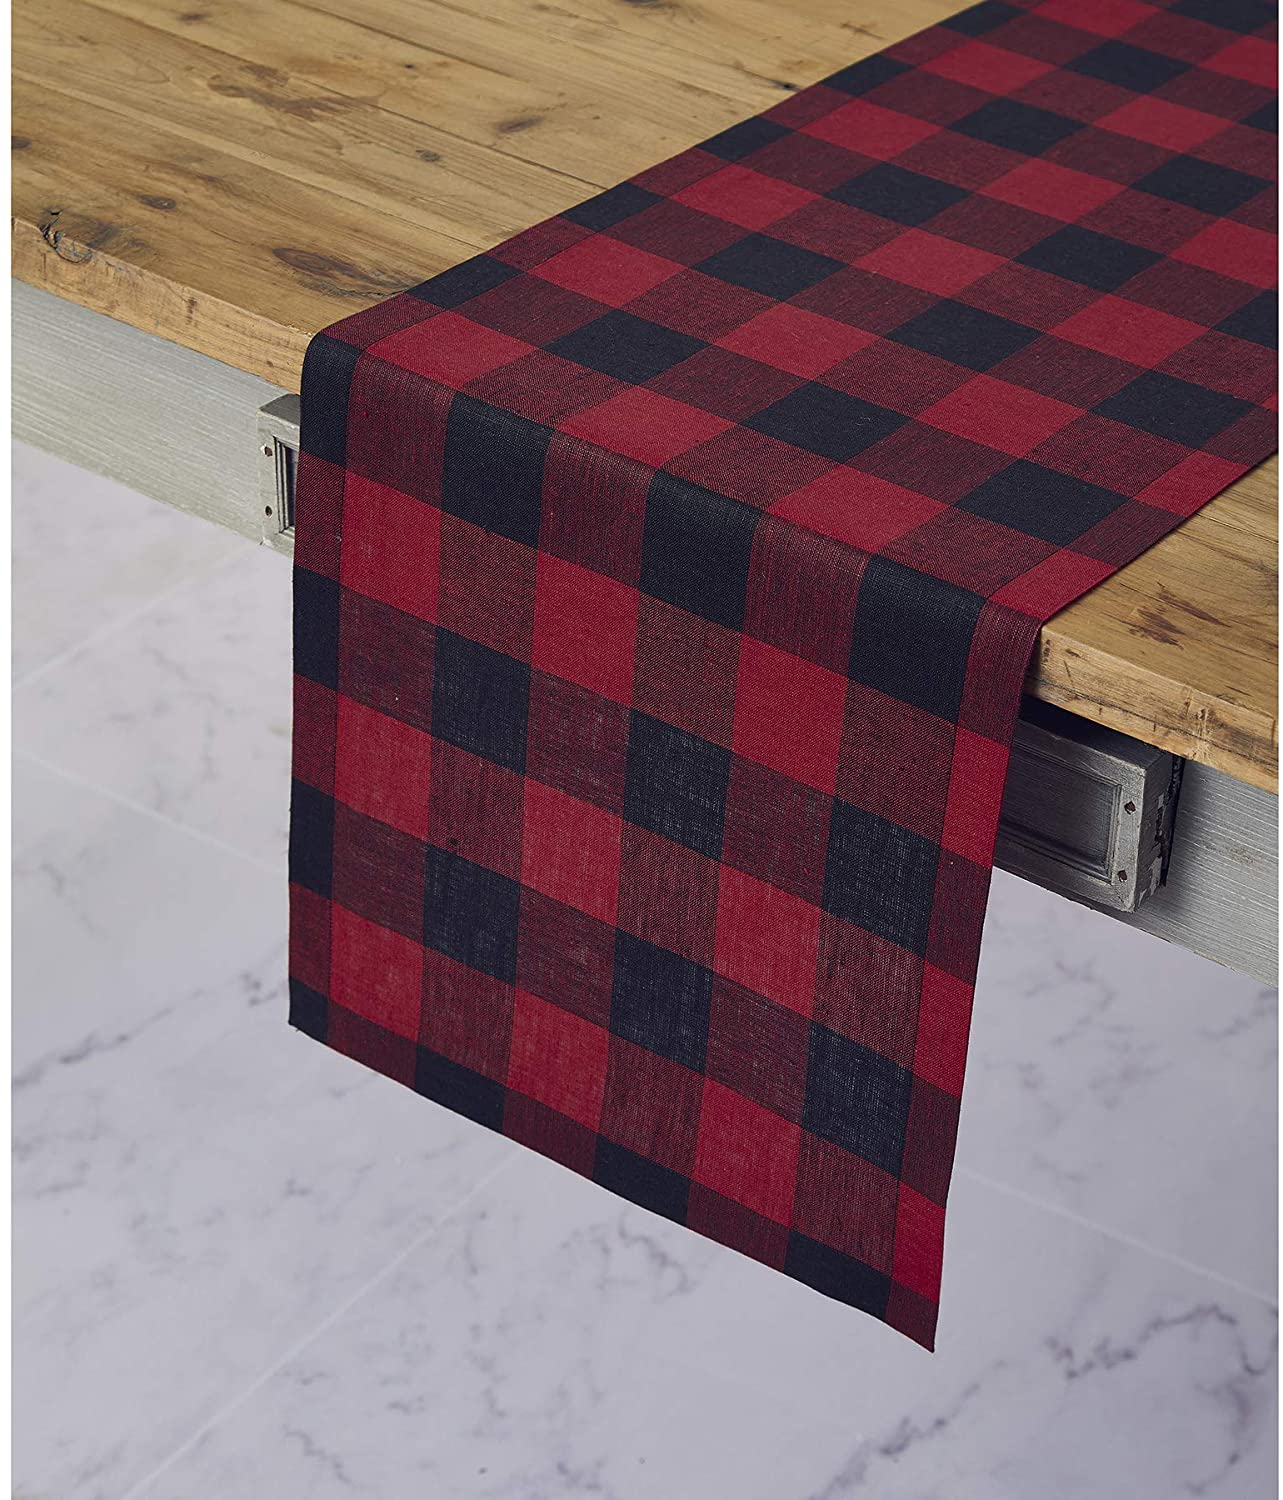 Solino Home 100% Pure Linen Buffalo Check Table Runner – 14 x 120 Inch Red & Black Checks Table Runner Natural Fabric Handcrafted from European Flax